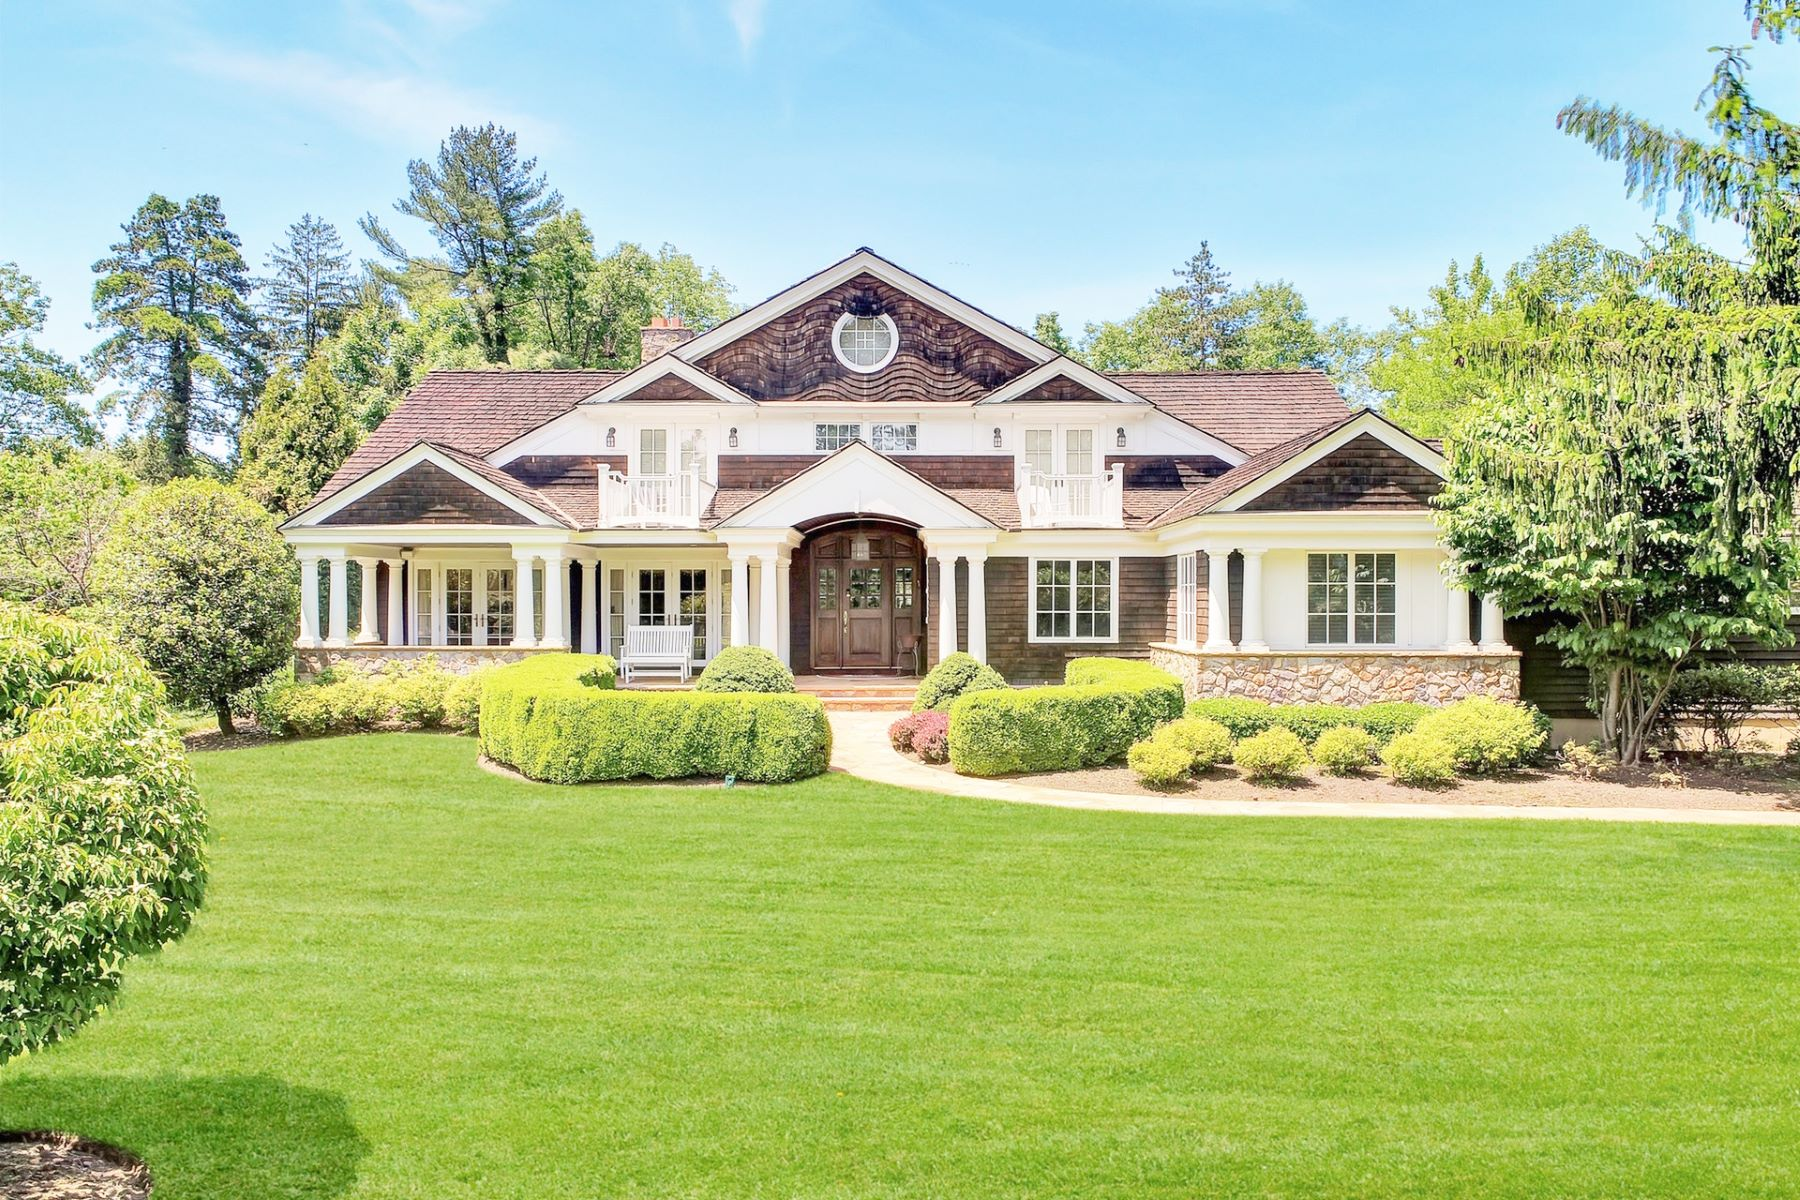 Single Family Home for Sale at Hamptons in Short Hills 135 Stewart Road, Short Hills, New Jersey 07078 United States